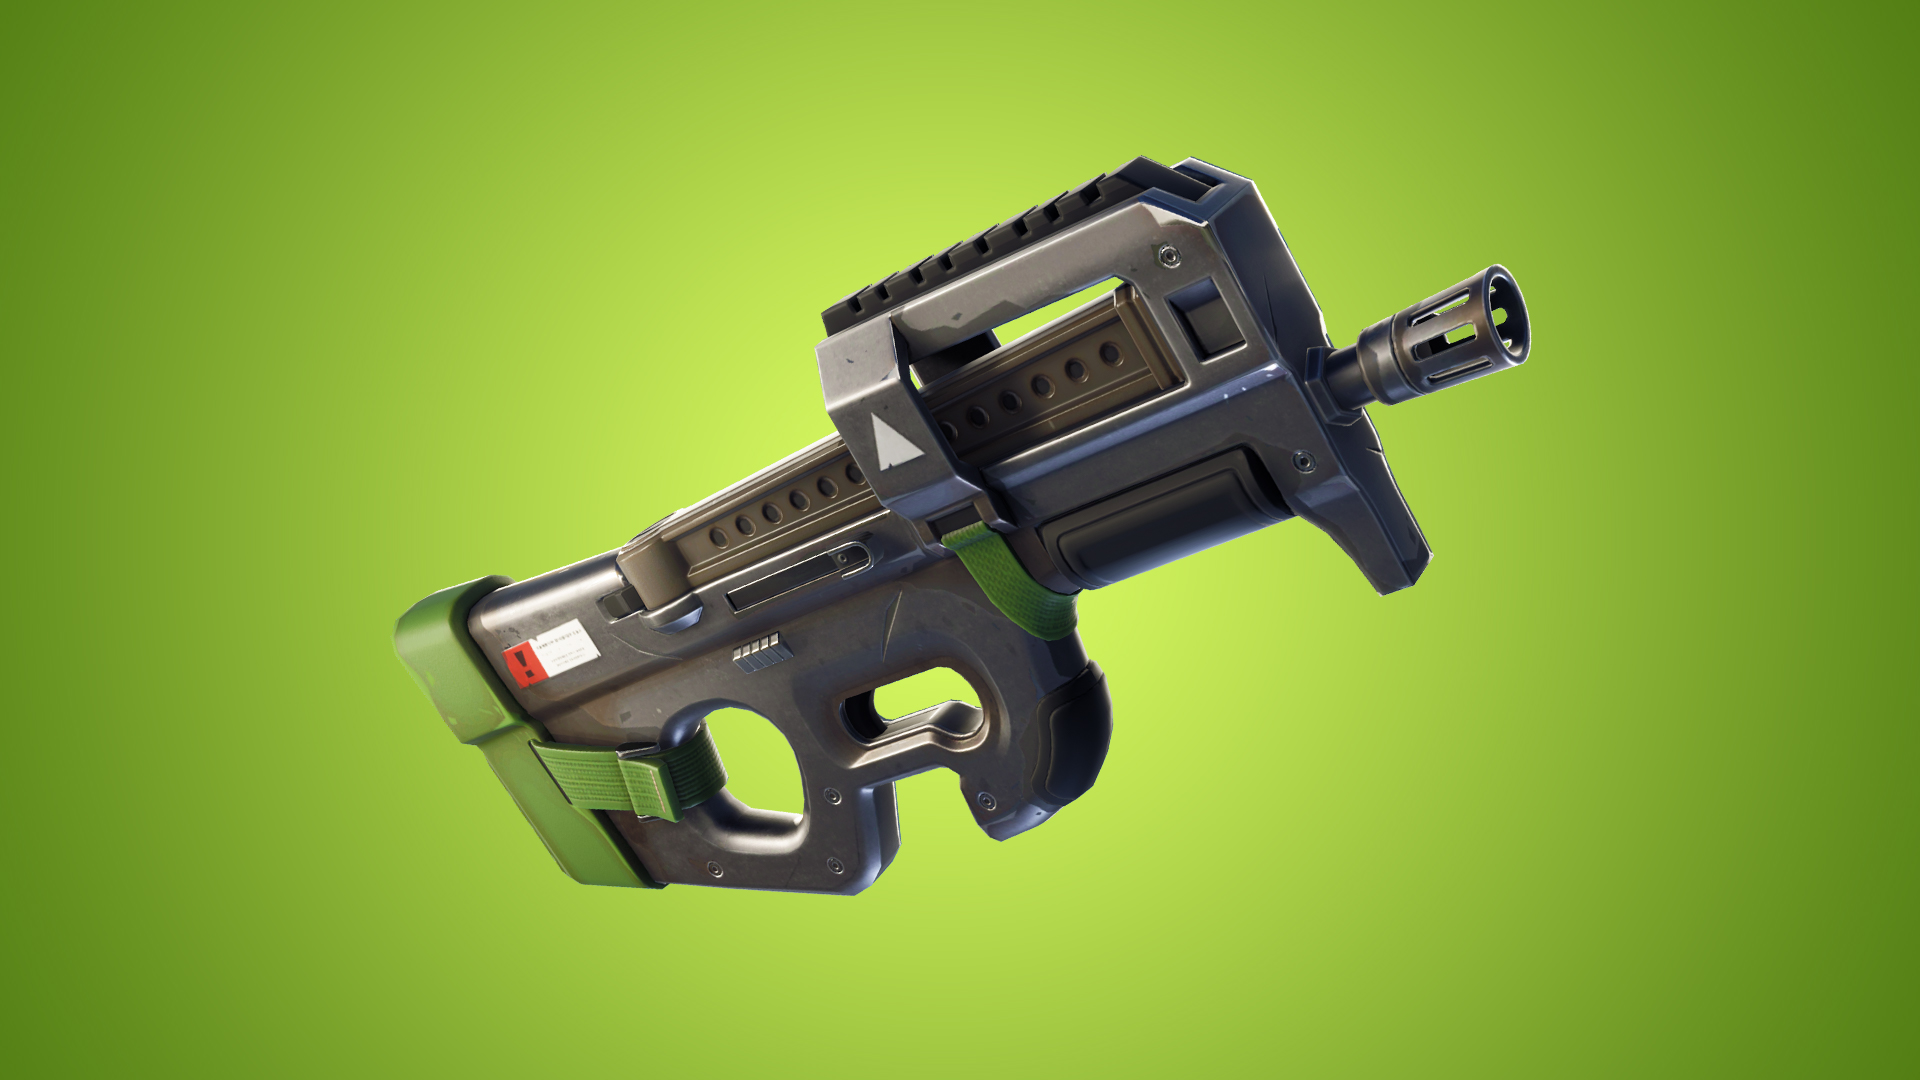 Fortnite Tactical Smg Vs Smg Compact Smg Is Vaulted In Fortnite S V9 01 Update Dot Esports